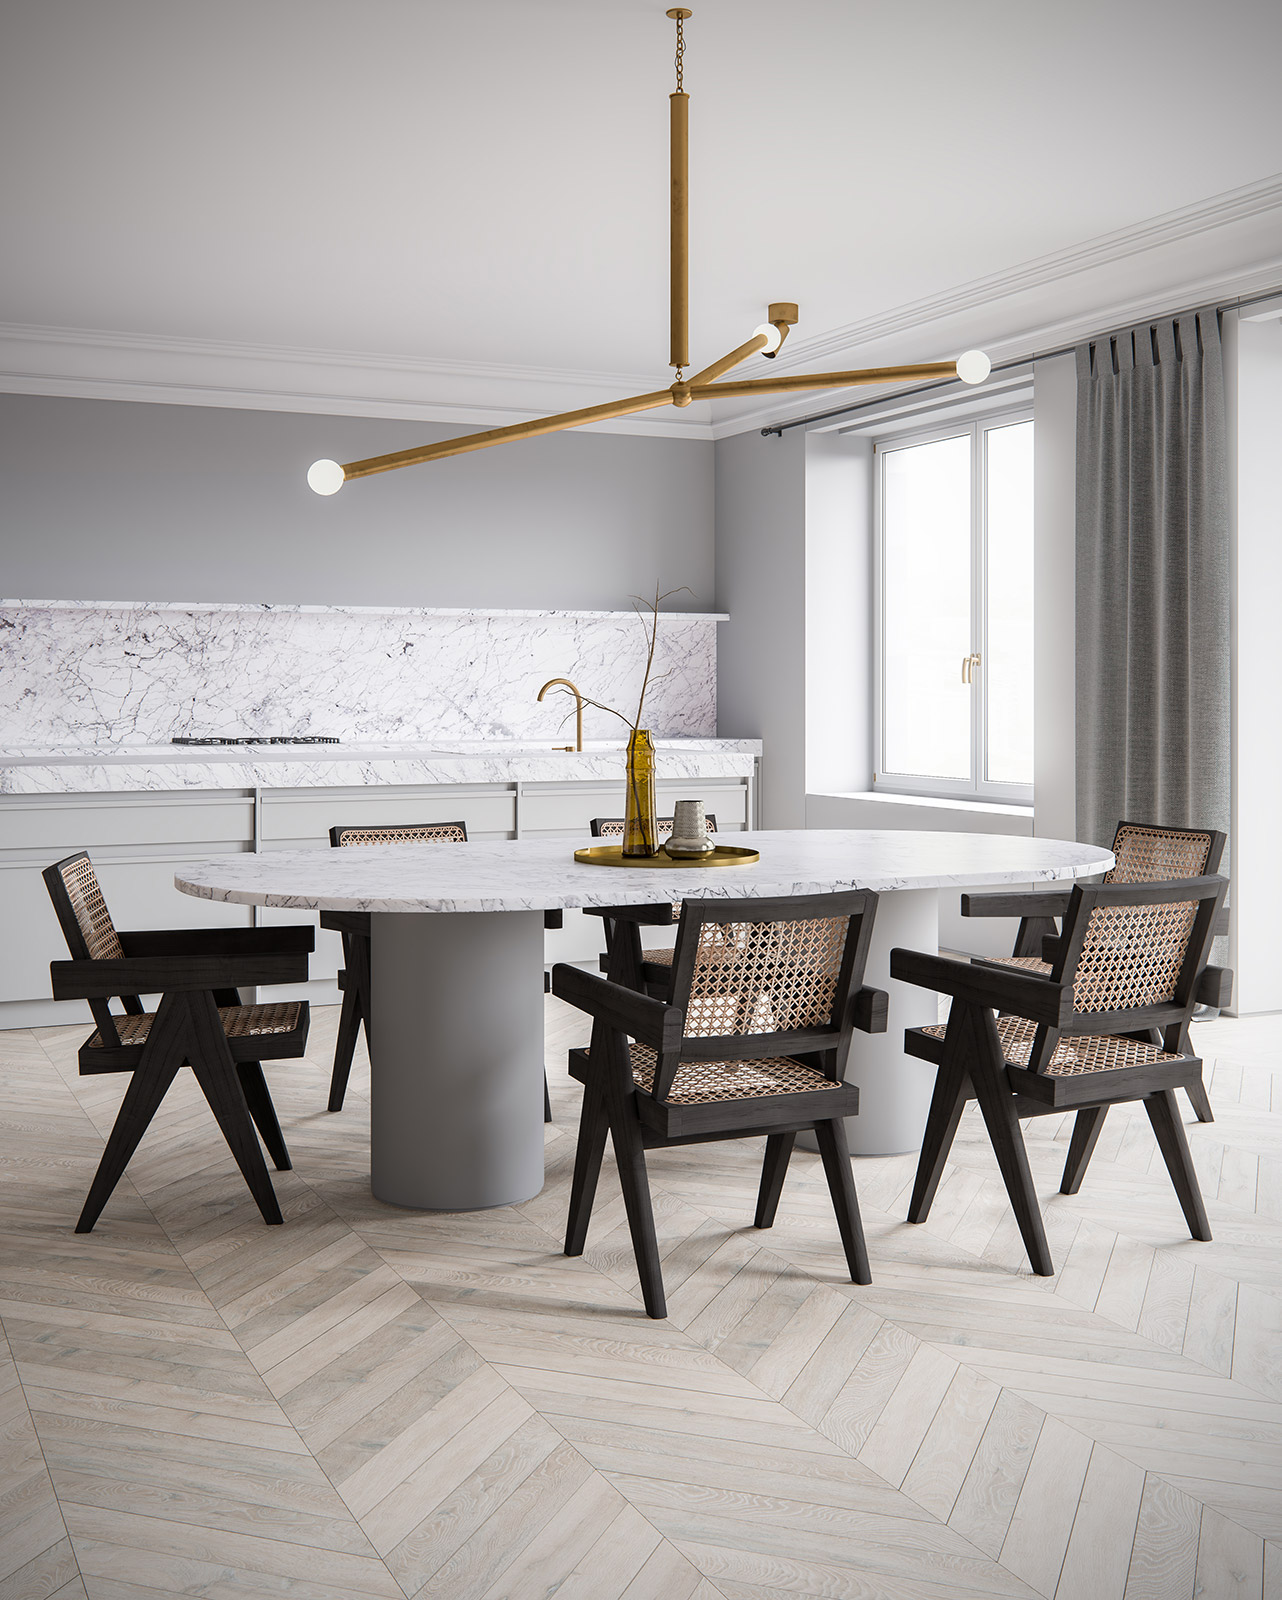 3d interior render. ScreenAge featured project - MIST Dining Table 2